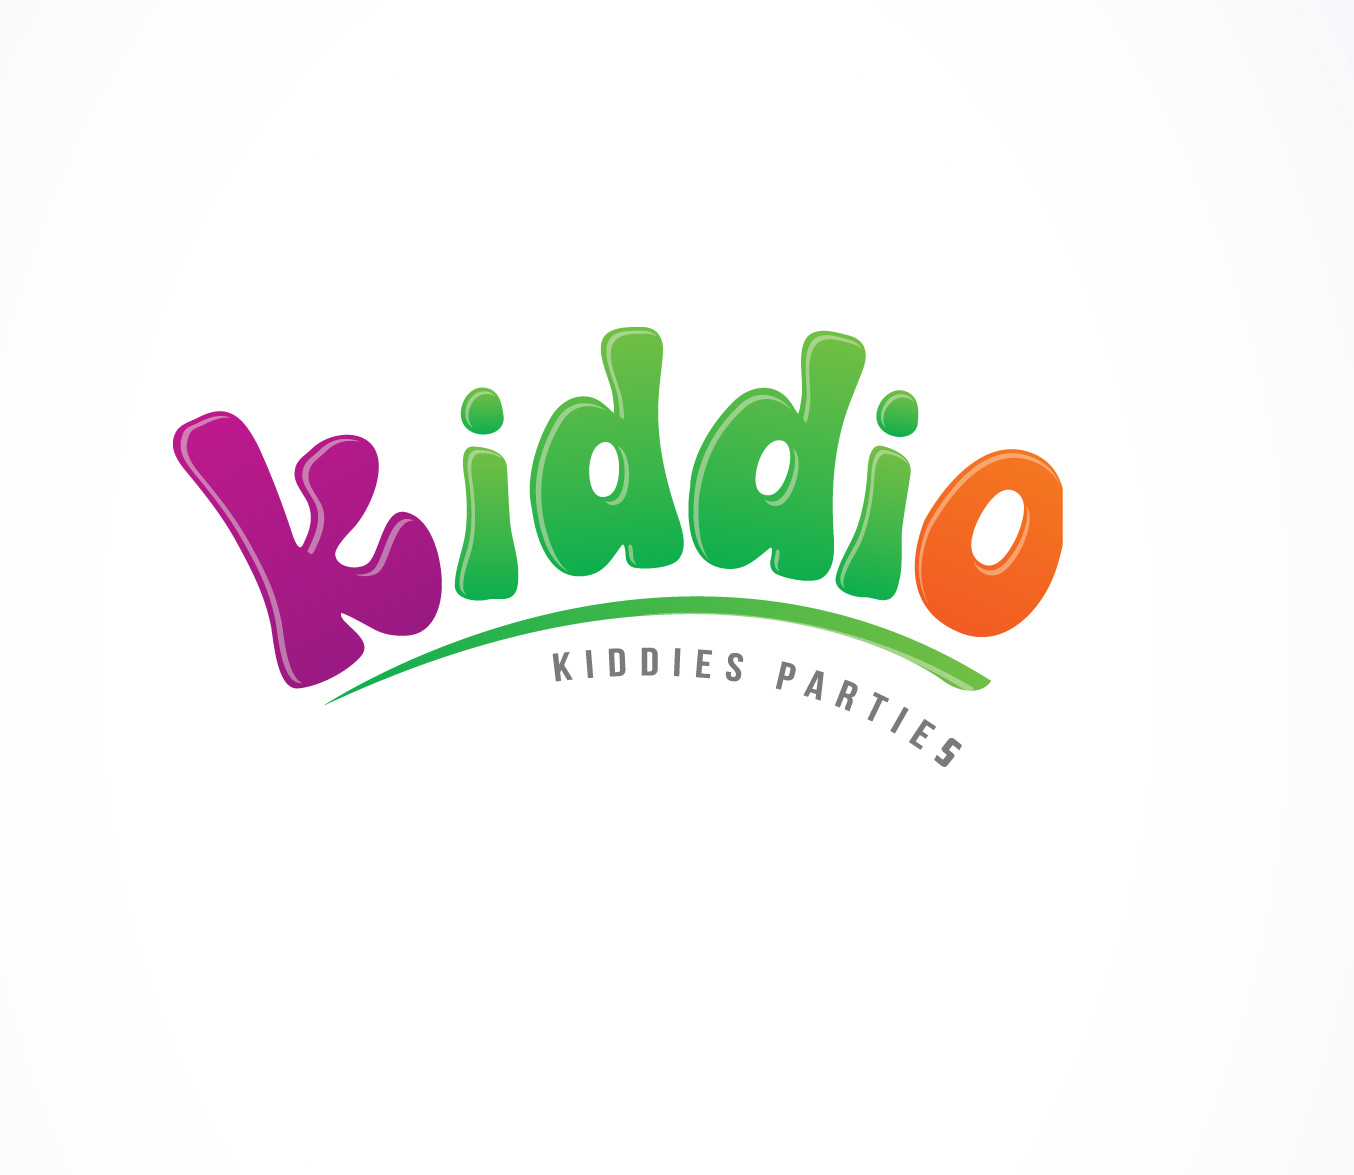 Kiddio Kiddies Parties & Catering